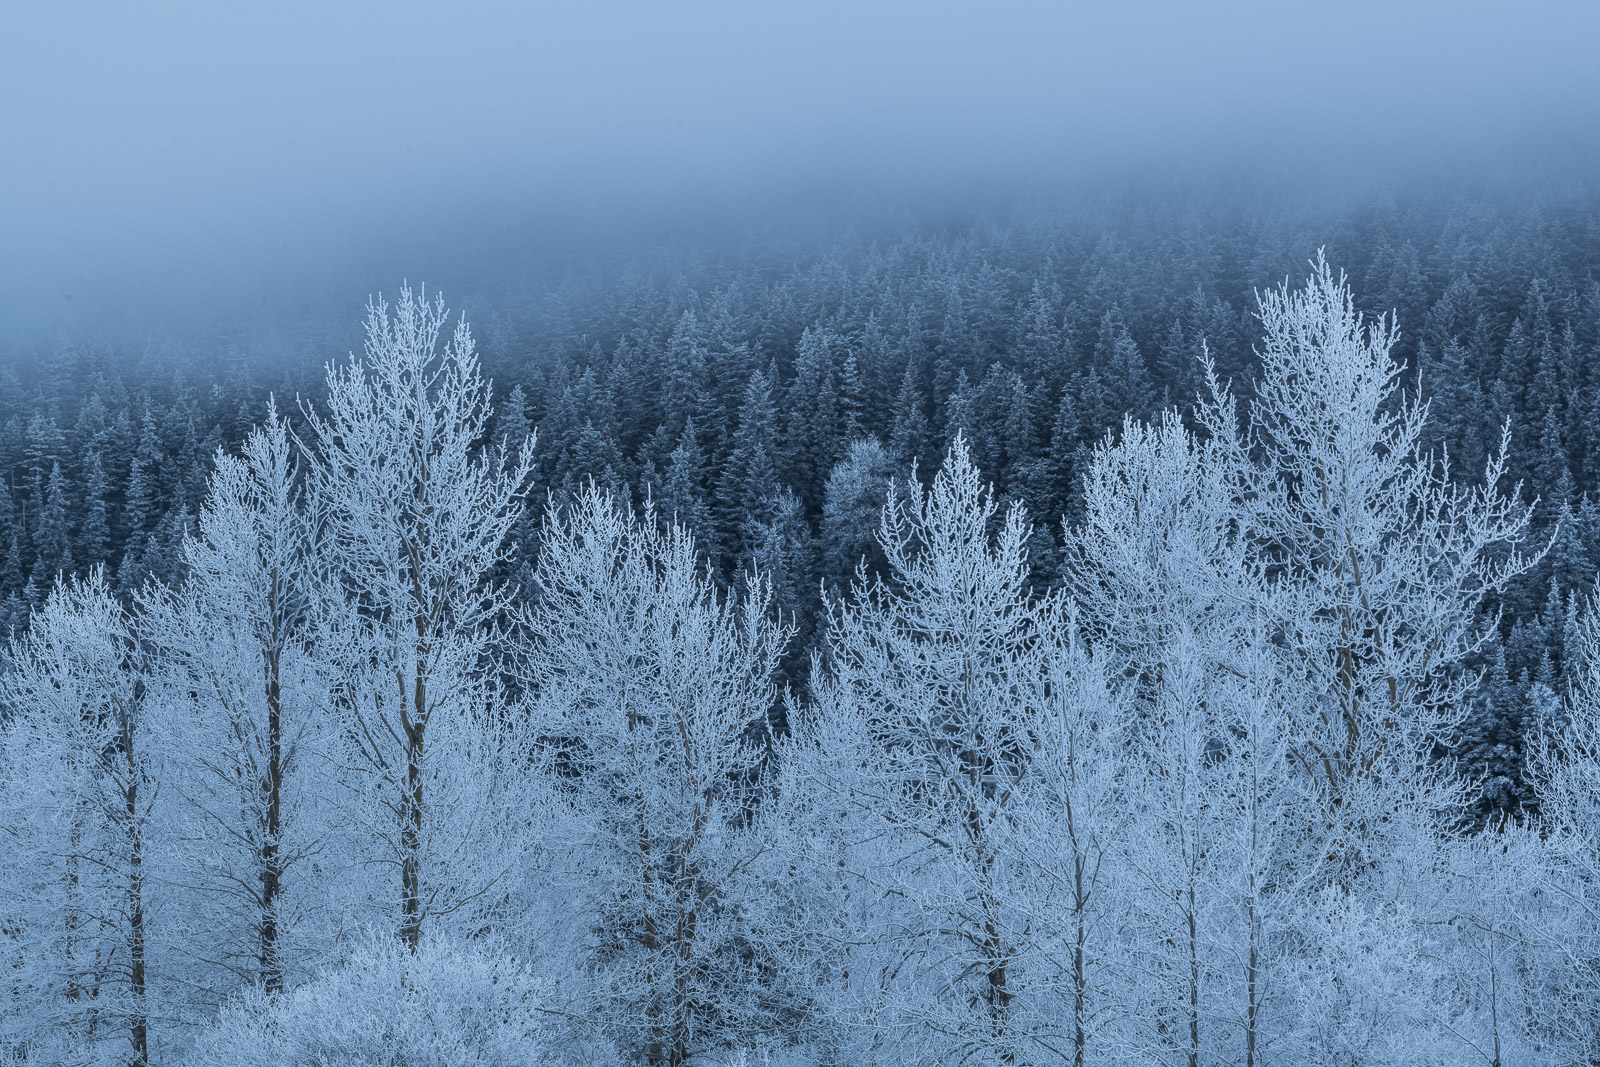 Ice fog and hoar frost are a common occurrence in Southcentral Alaska along the coast in January. Our window to photograph this...